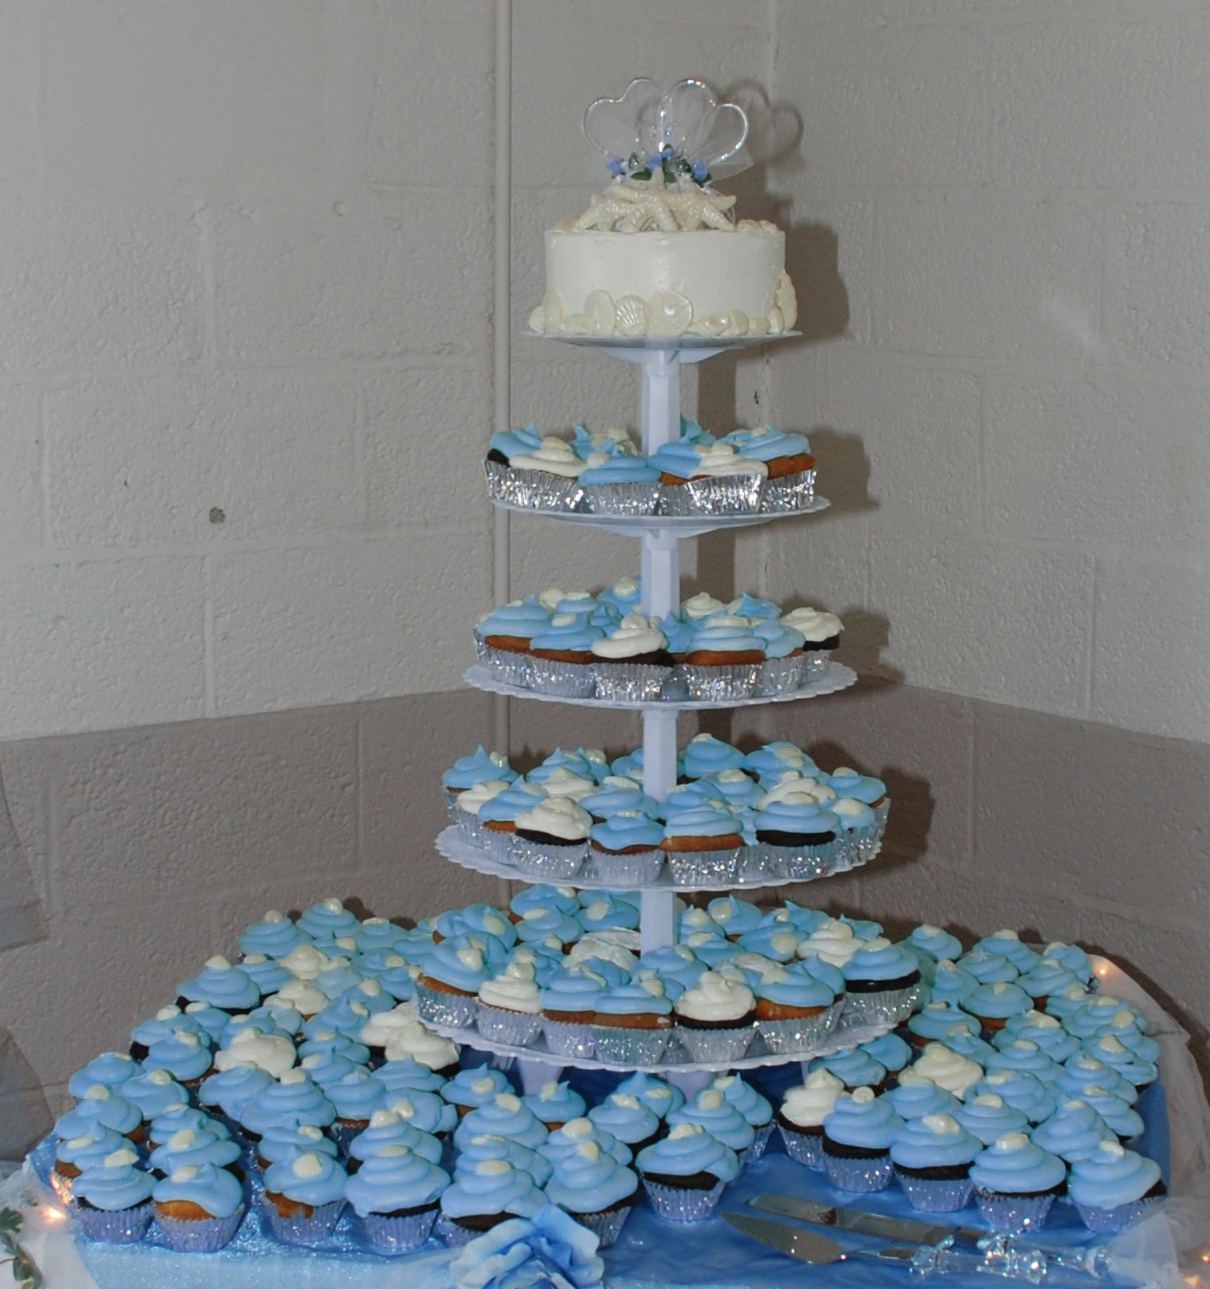 Lovely Blue colored Wedding Cupcakes Wedding Cake Designs